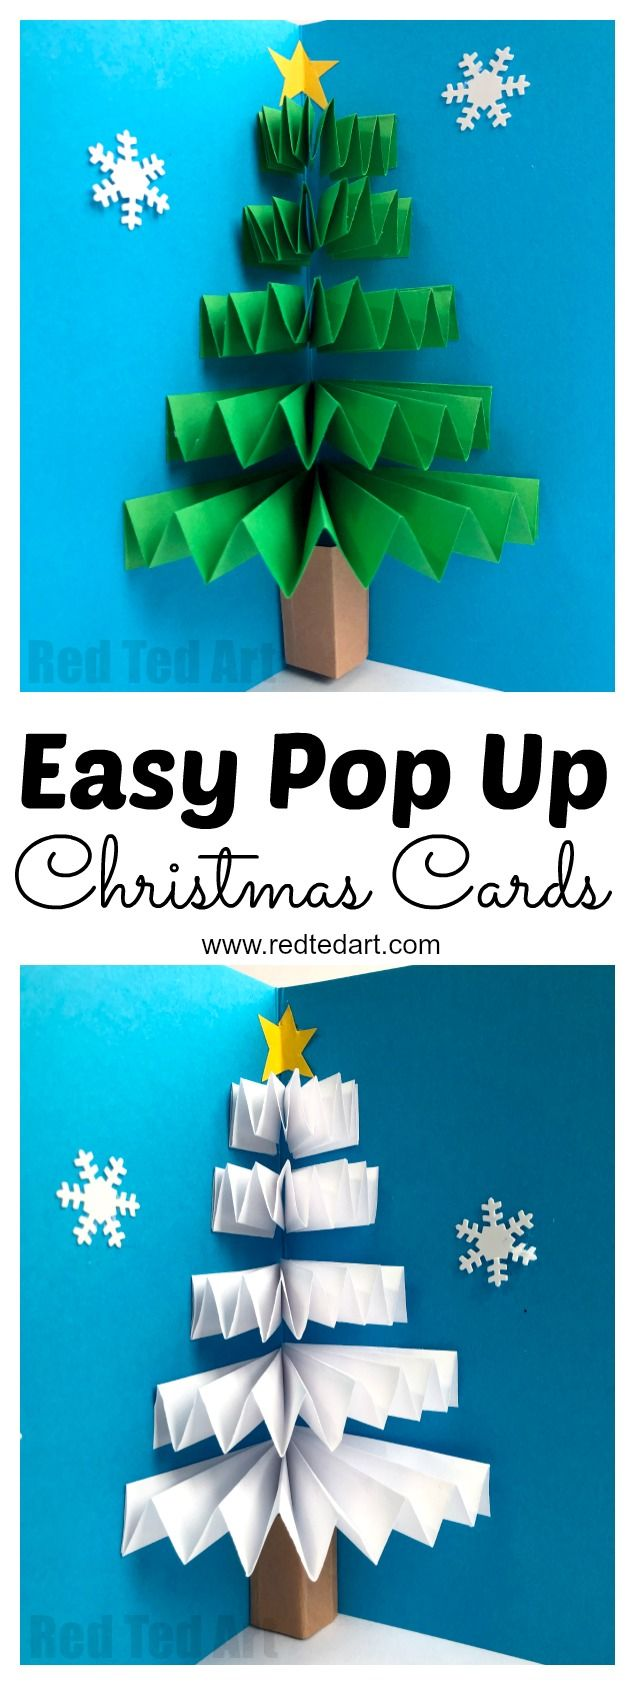 DIY-3D-Christmas-Card-Pop-Up.jpg (635×1685)